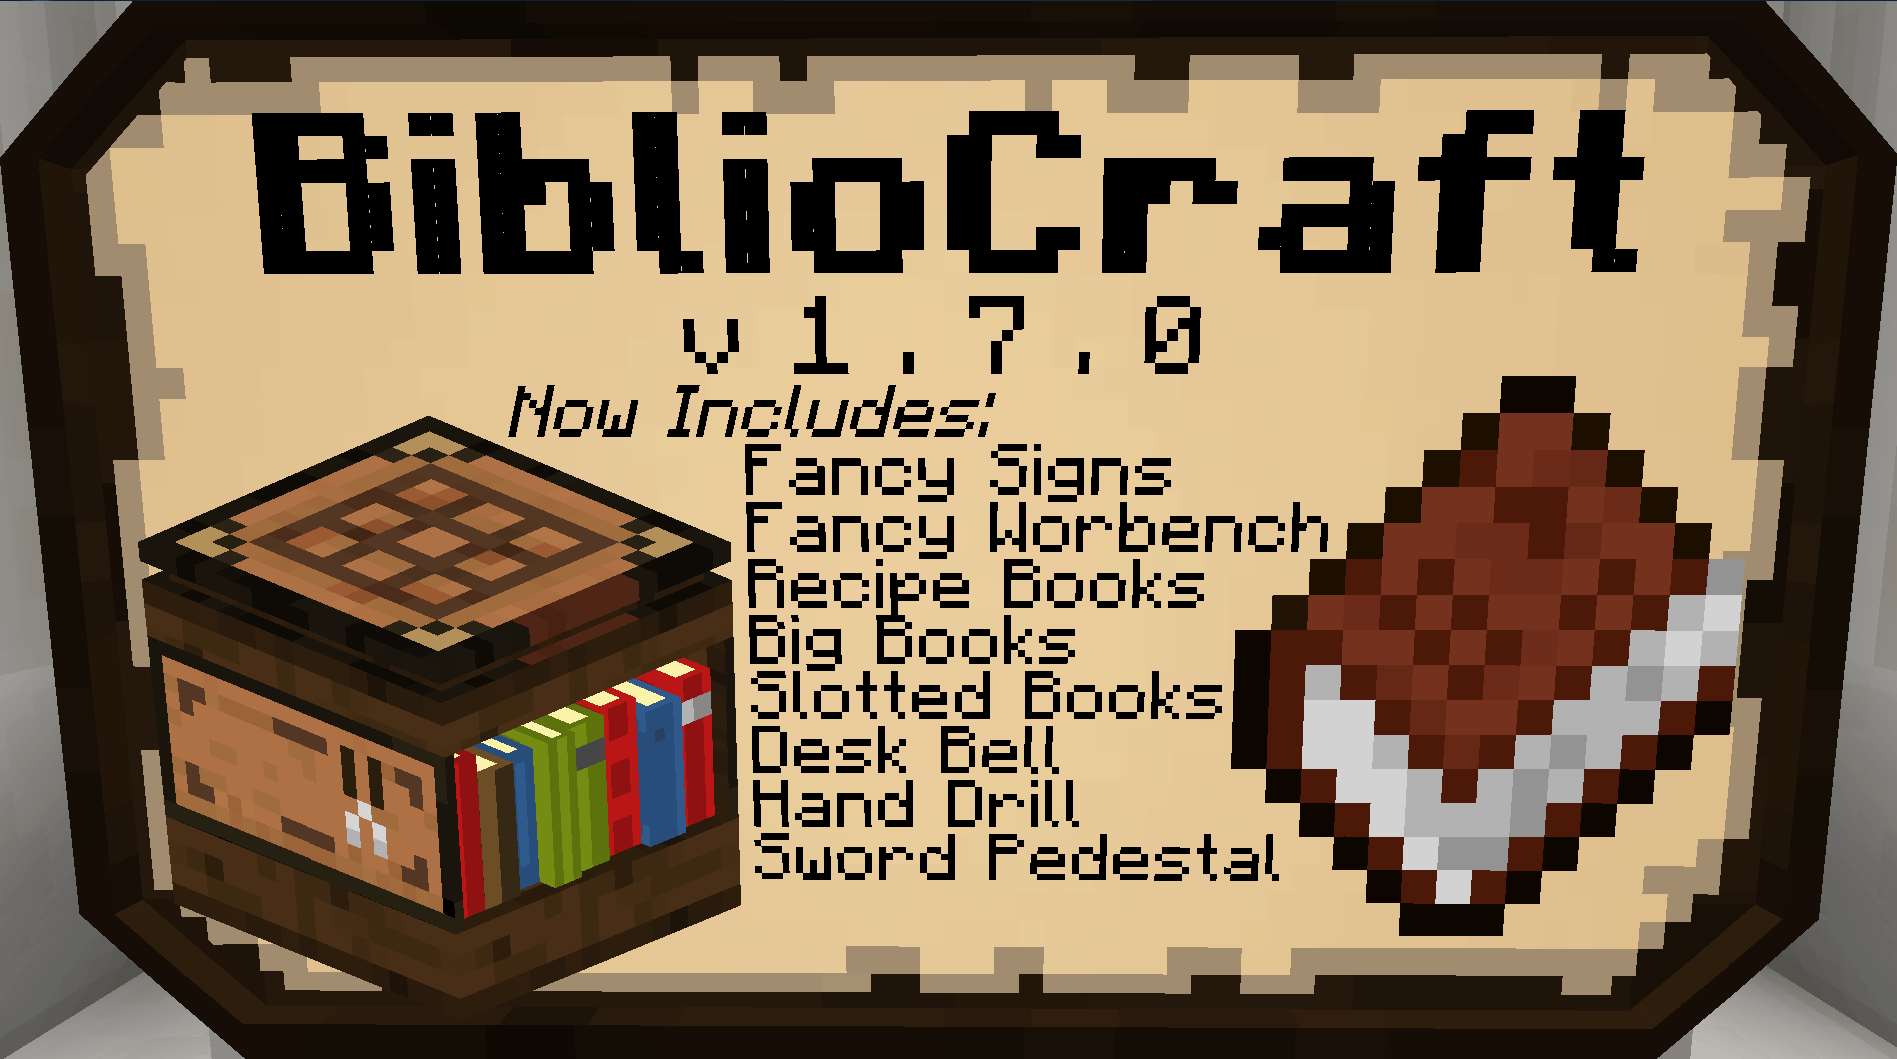 Bibliocraft - Fancy Sign